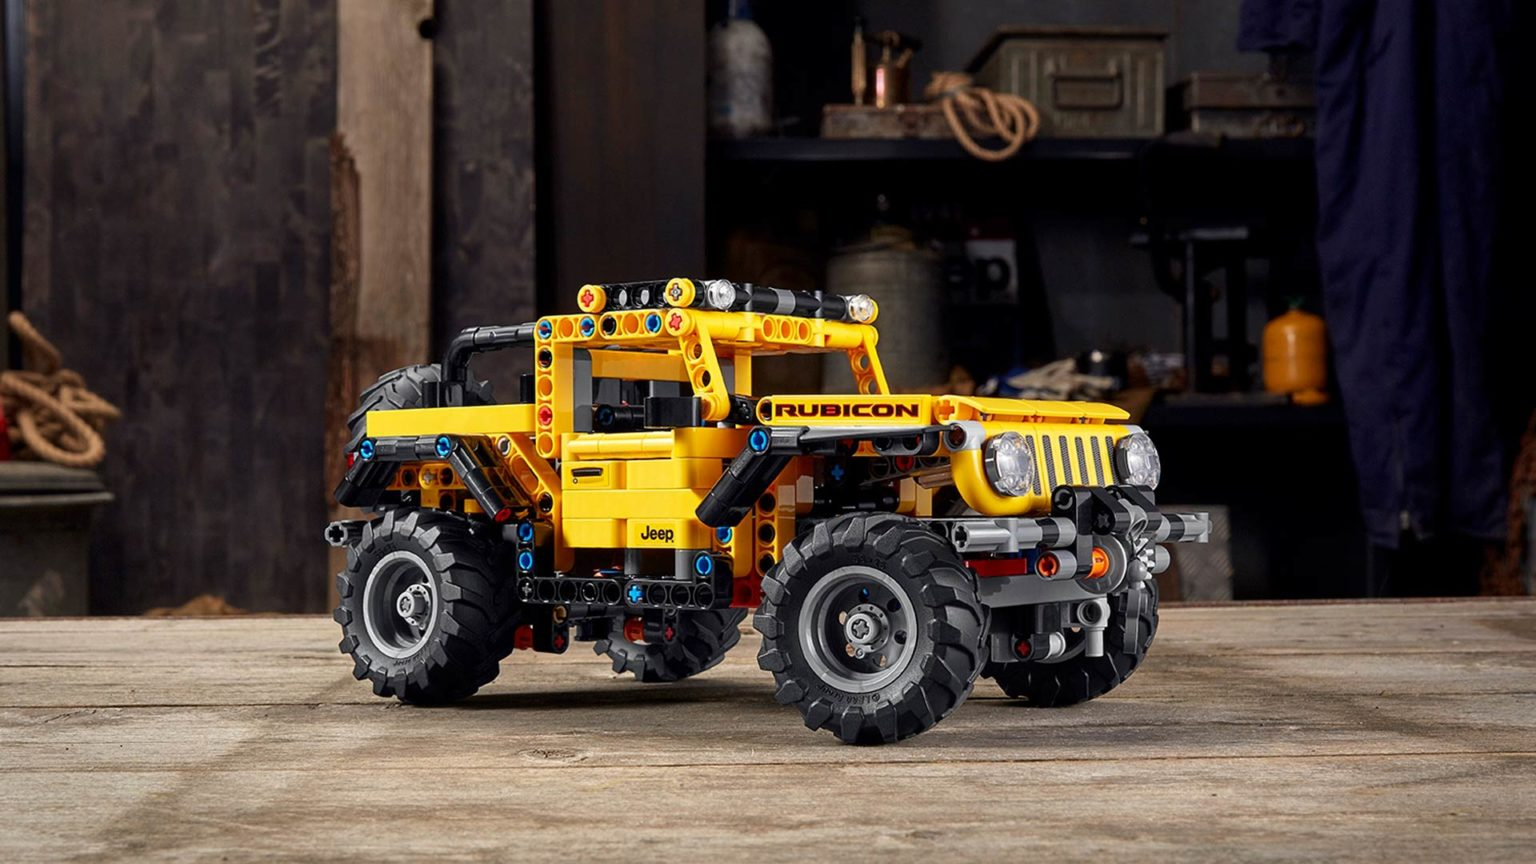 Jeep Now Has its Very Own LEGO Technic Model